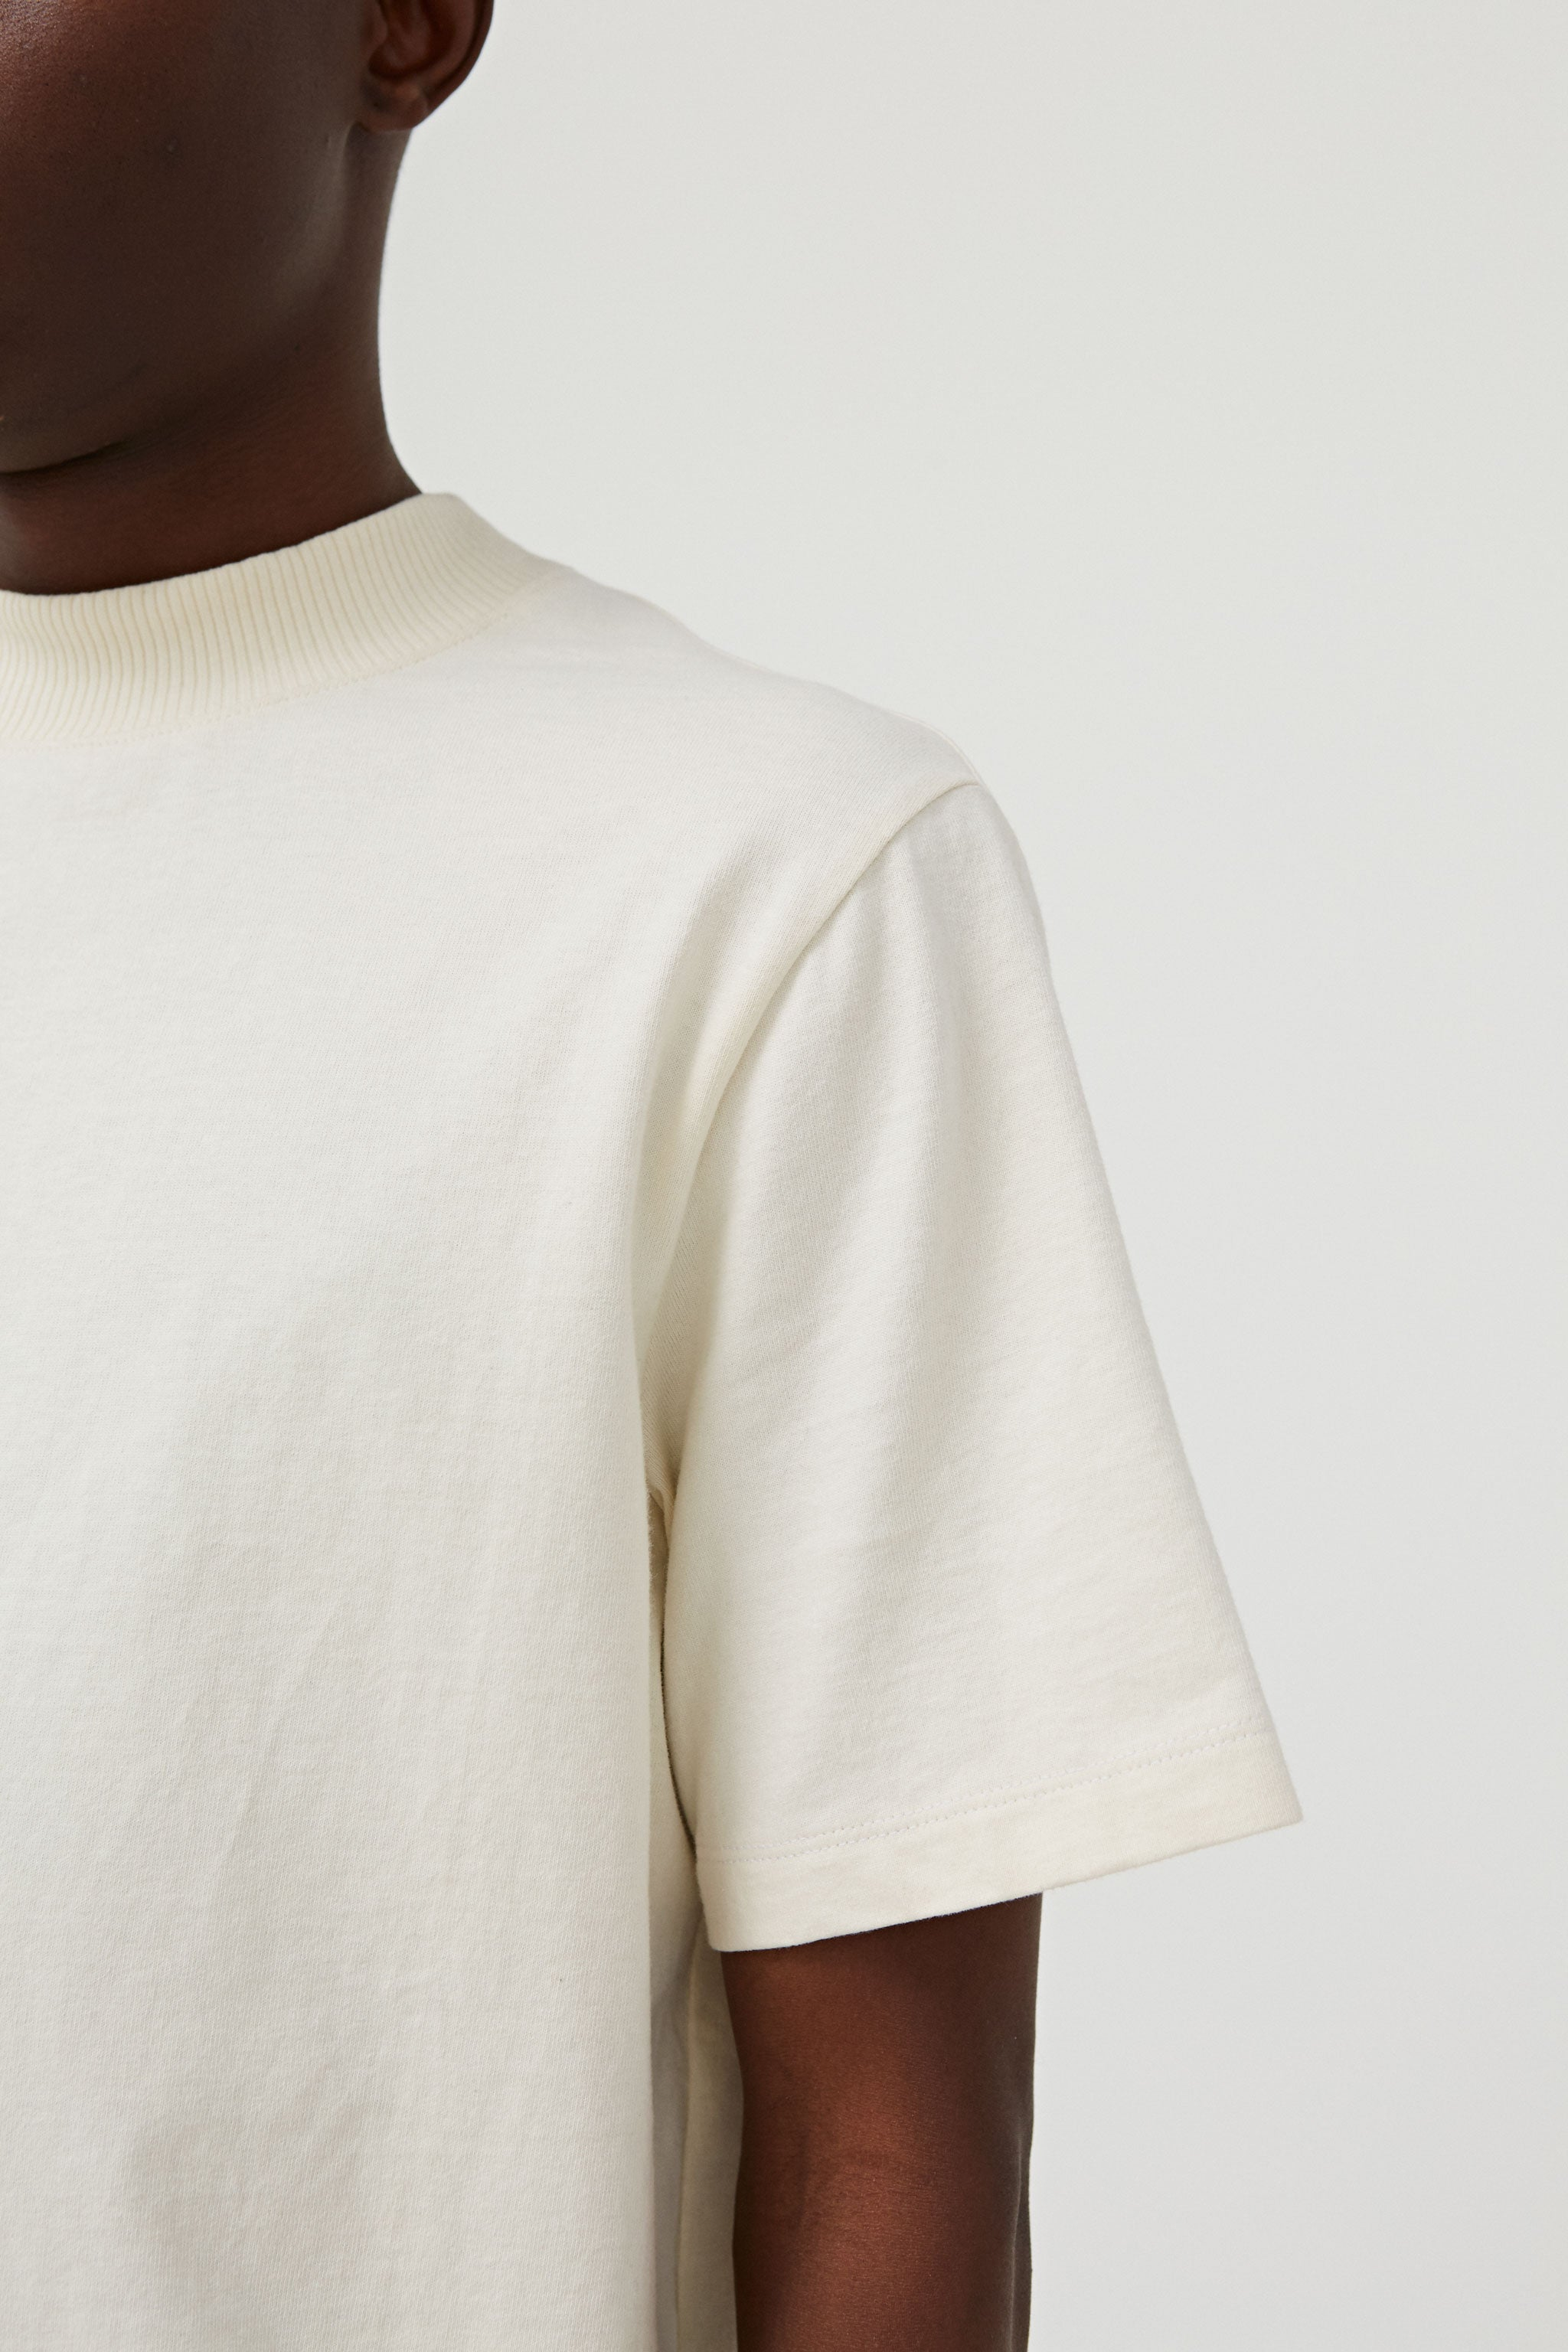 Goodfight FW18 Base Mock Neck Tee Shirt Off-White